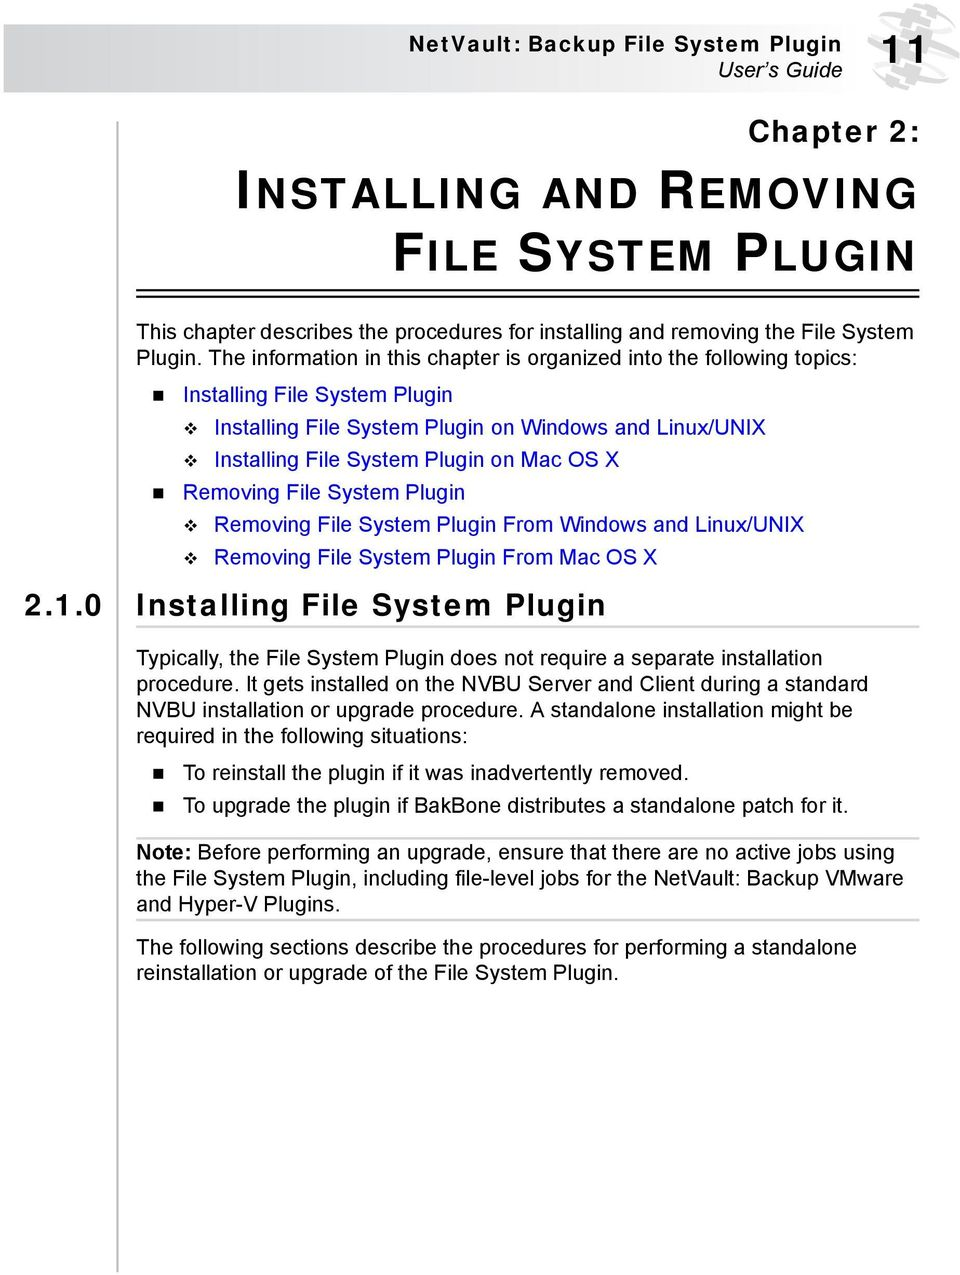 Removing File System Plugin Removing File System Plugin From Windows and Linux/UNIX Removing File System Plugin From Mac OS X 2.1.